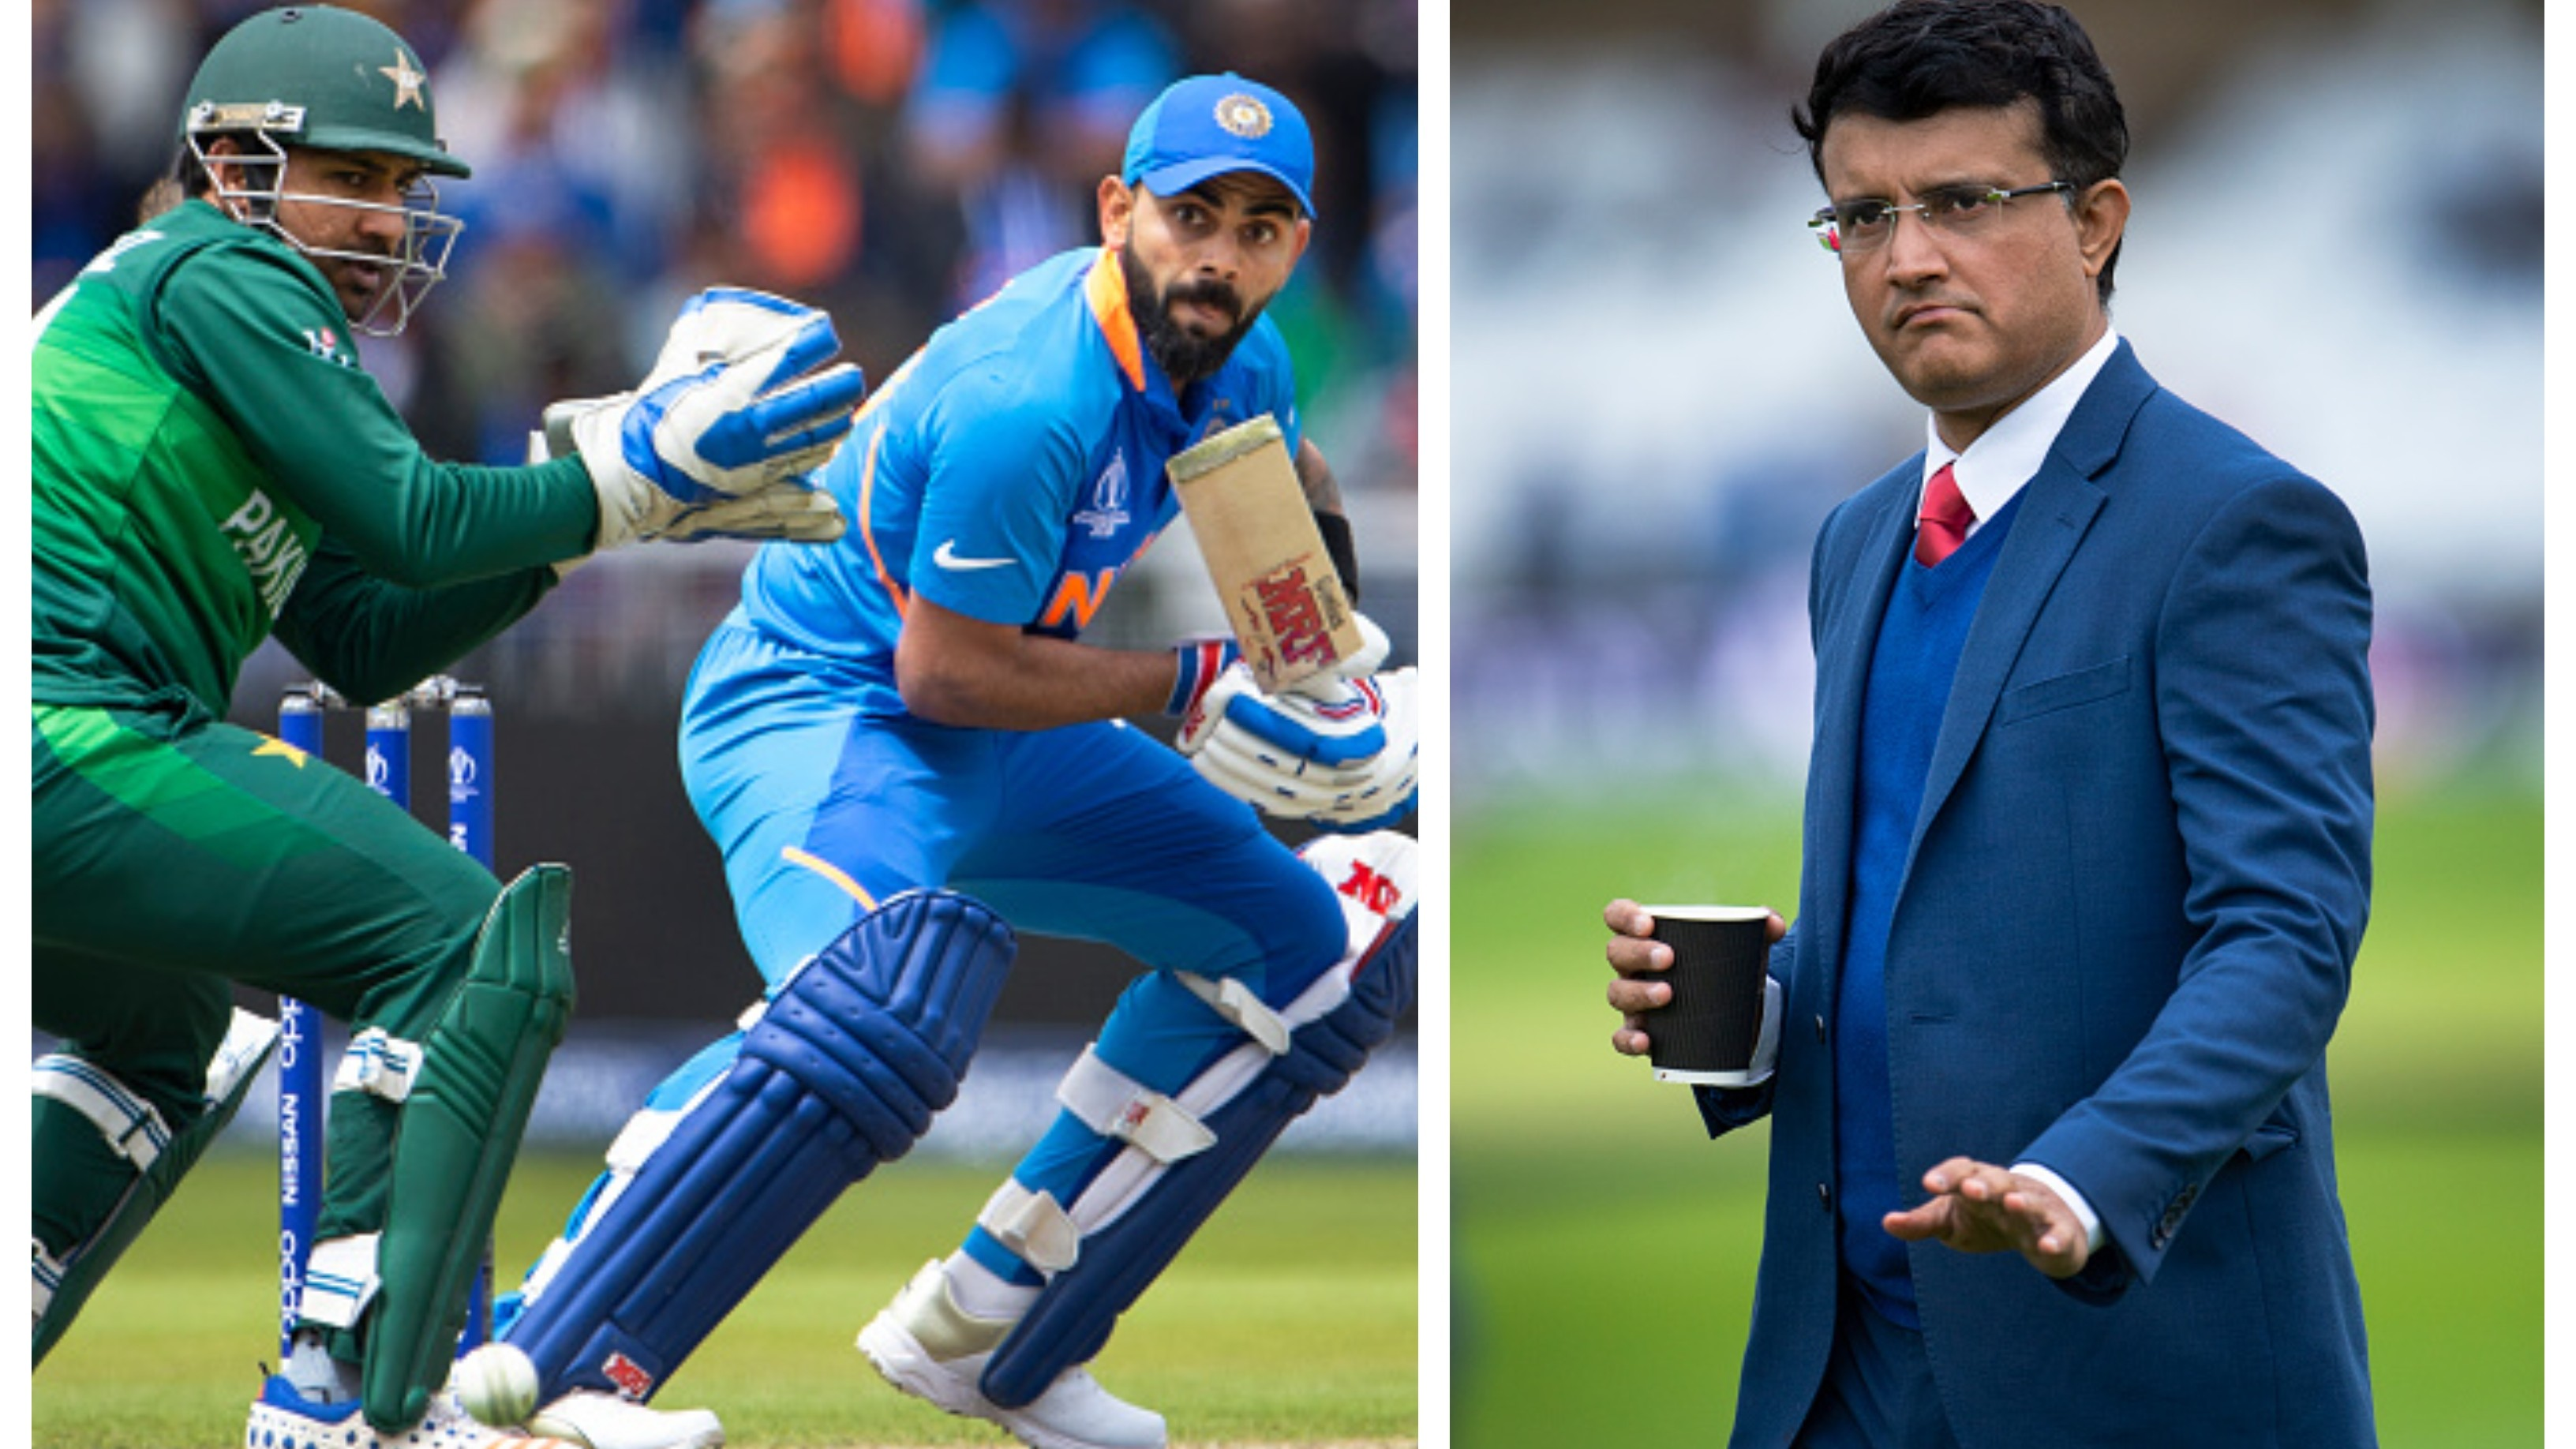 Resumption of cricket ties with Pakistan subject to government approval, says BCCI president Sourav Ganguly